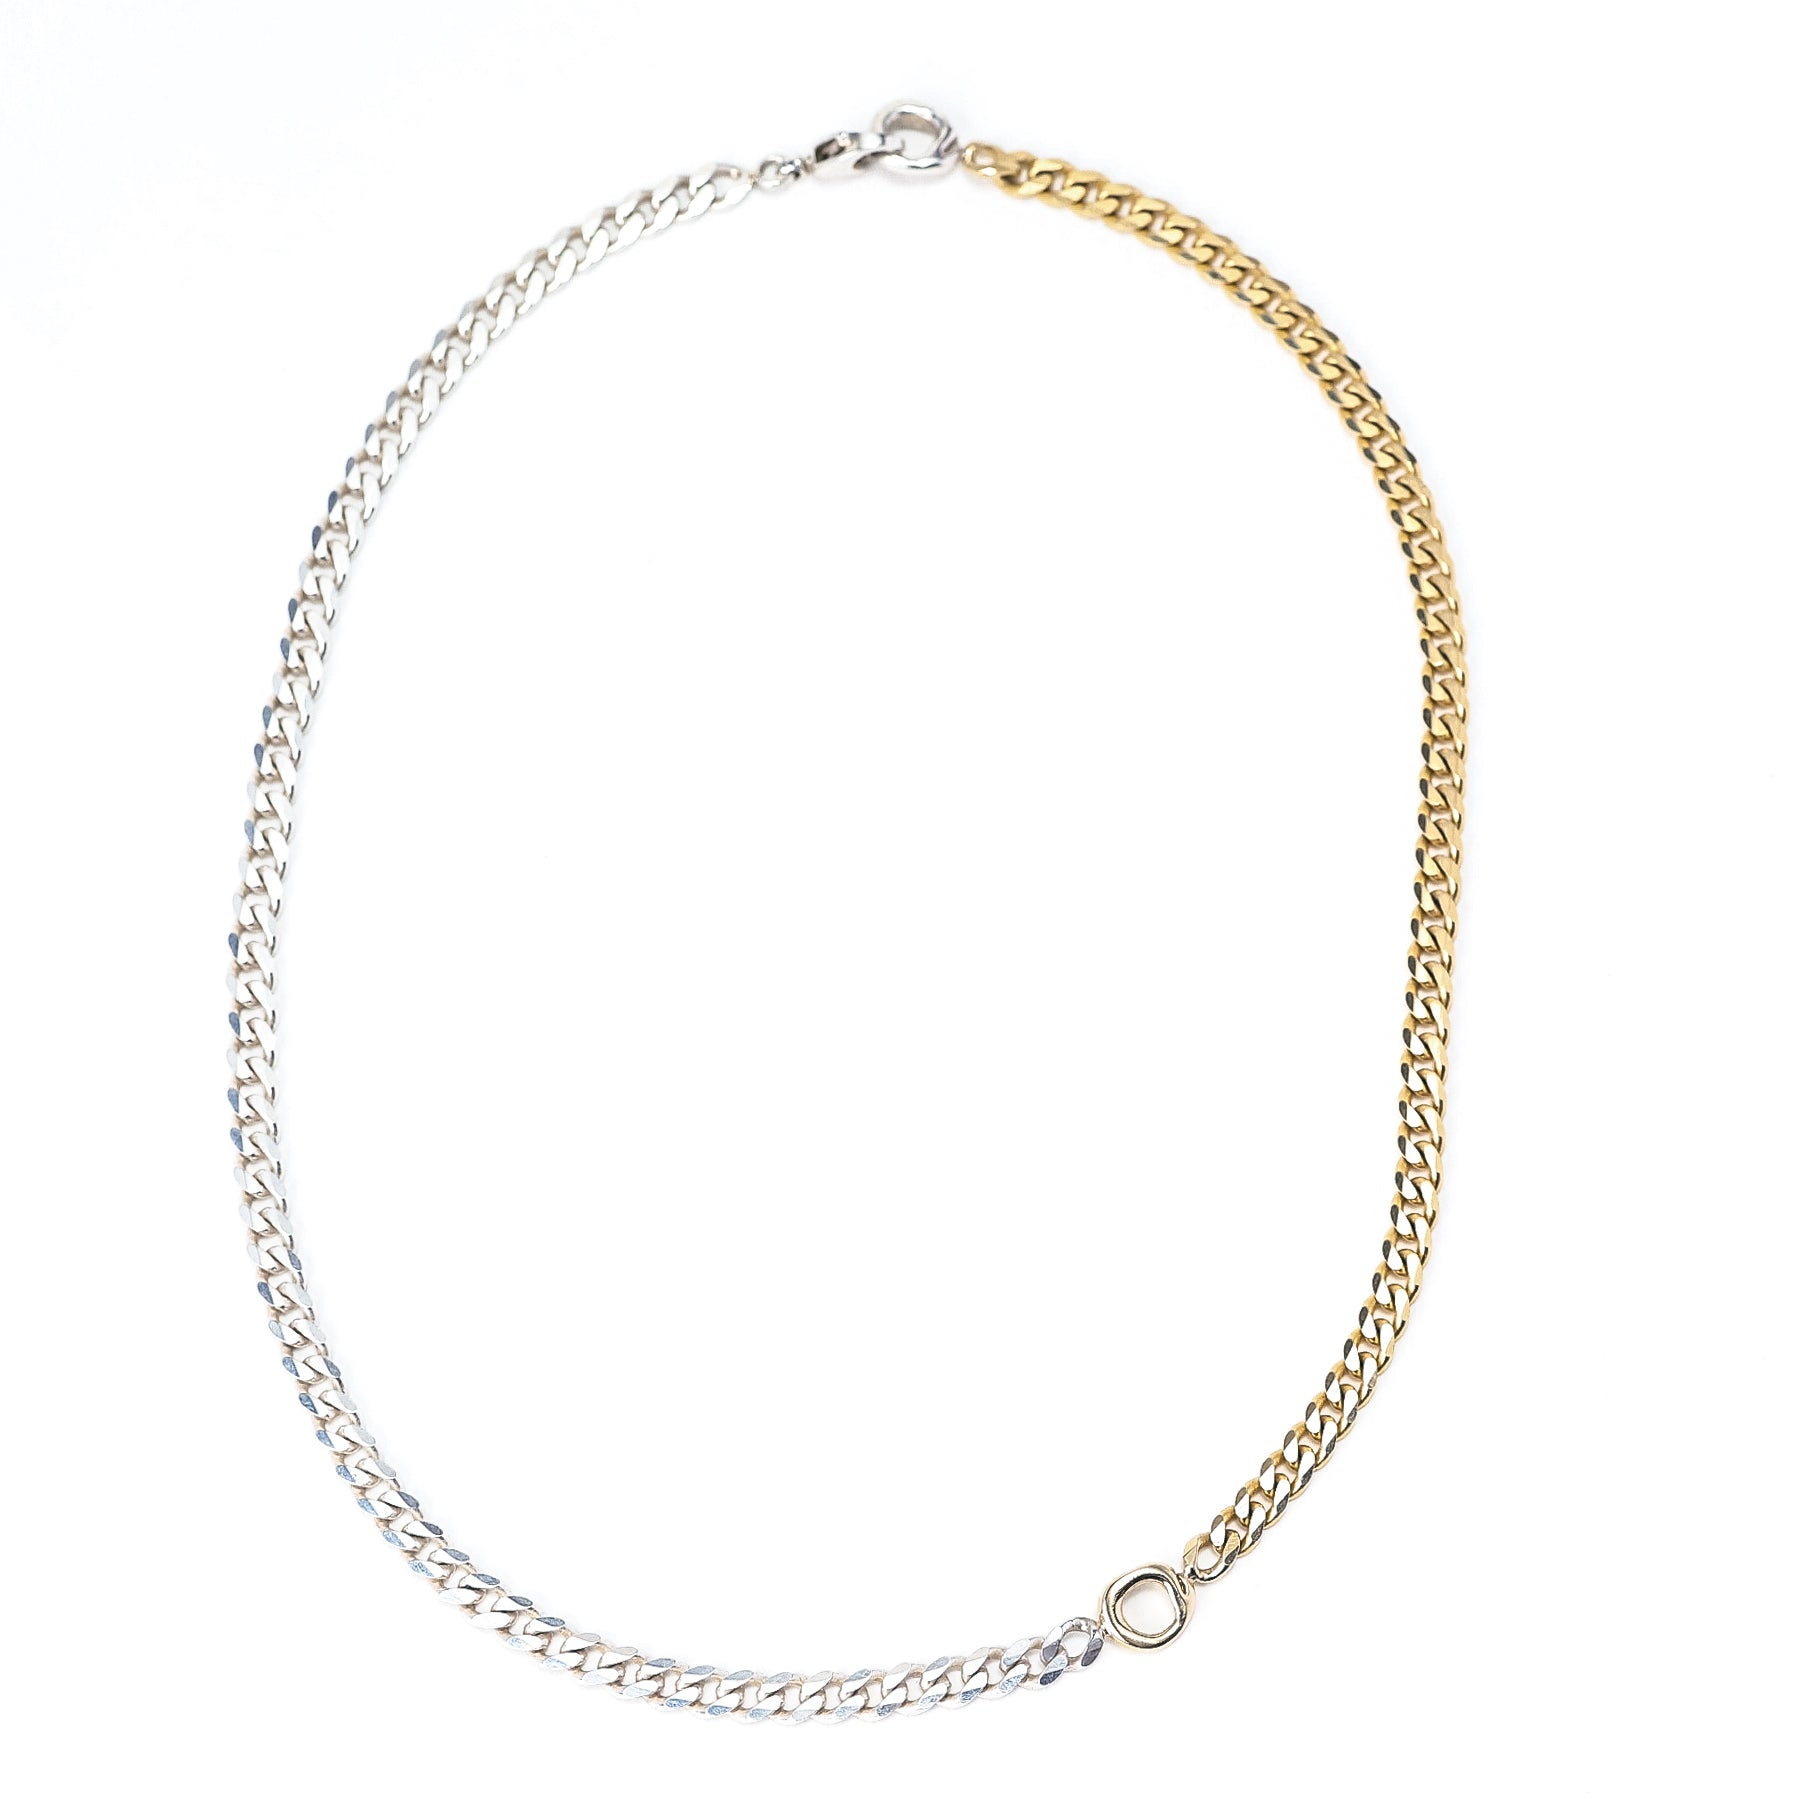 DUO Curb Chain Necklace